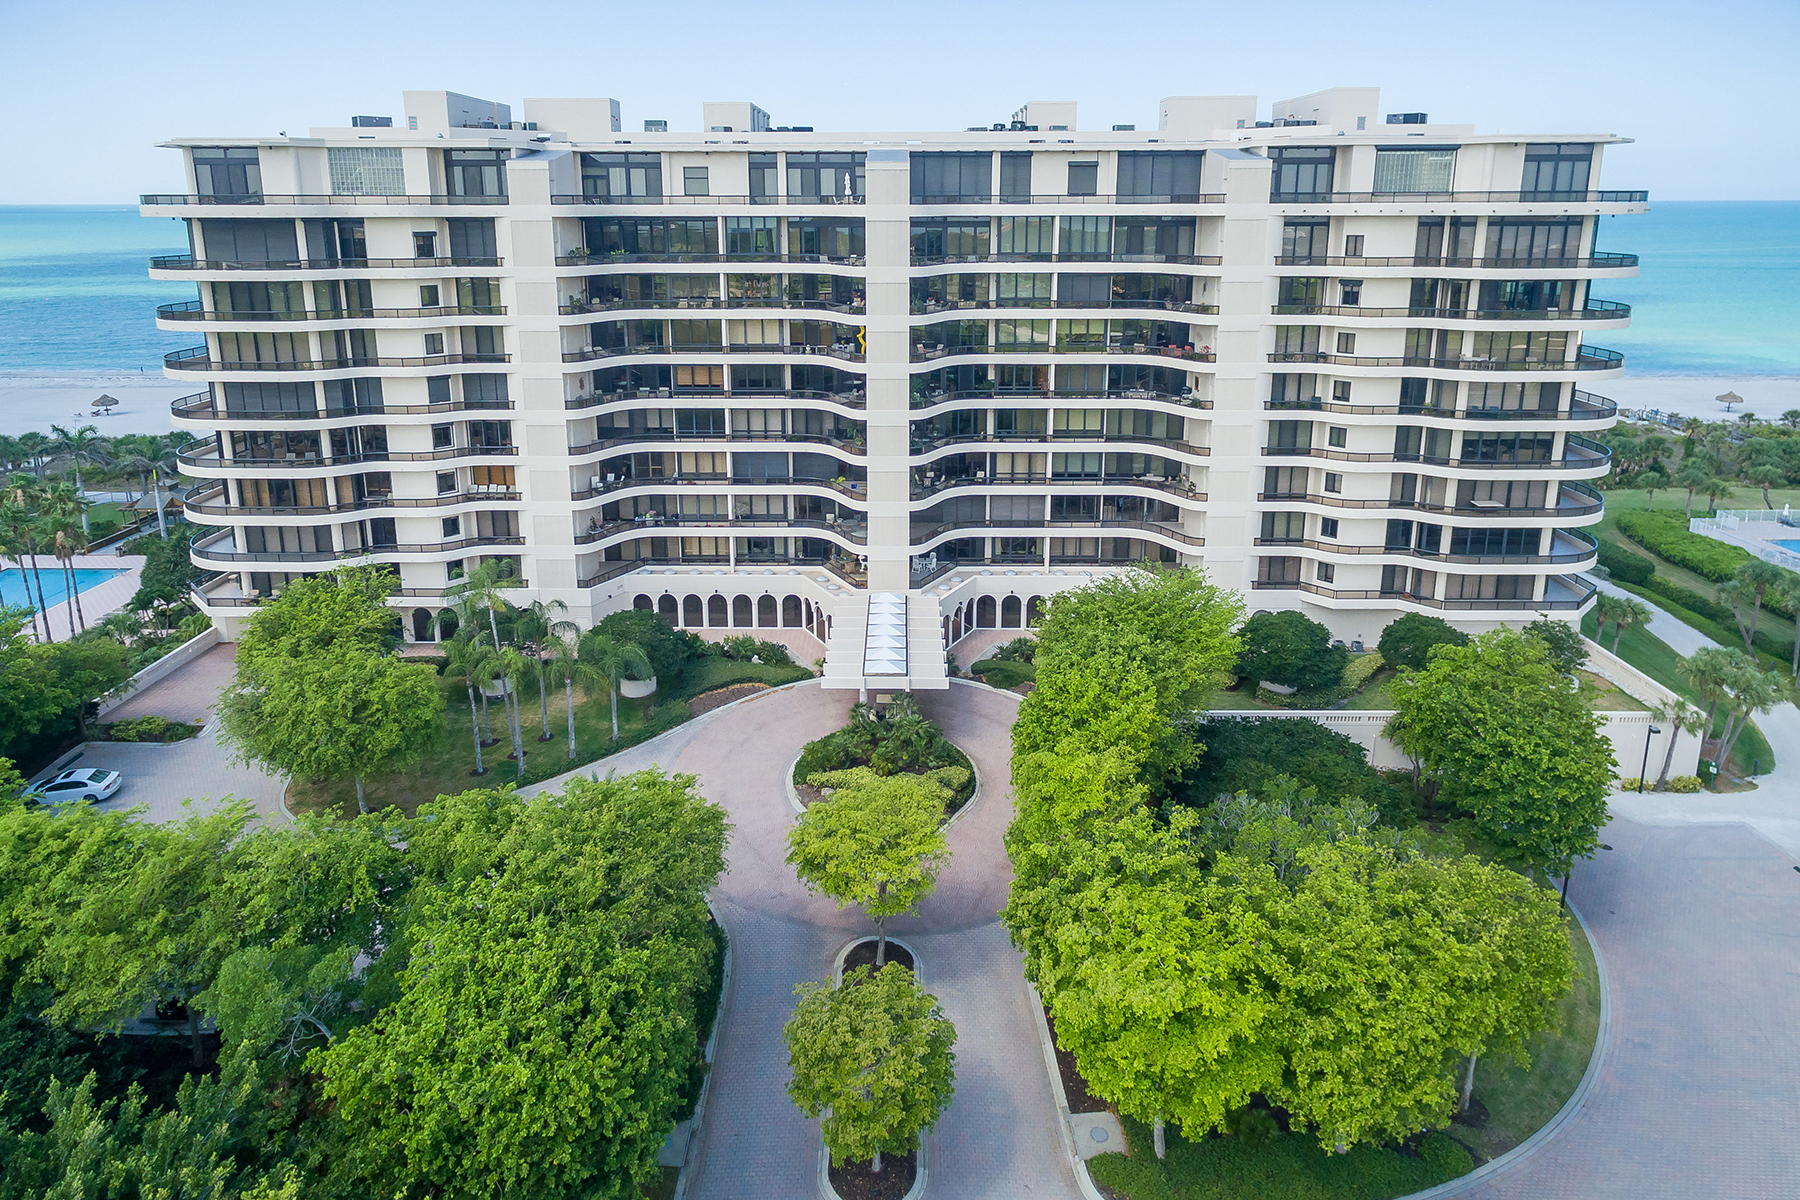 Condominium for Sale at L'AMBIANCE 435 L Ambiance Dr K206 Longboat Key, Florida, 34228 United States